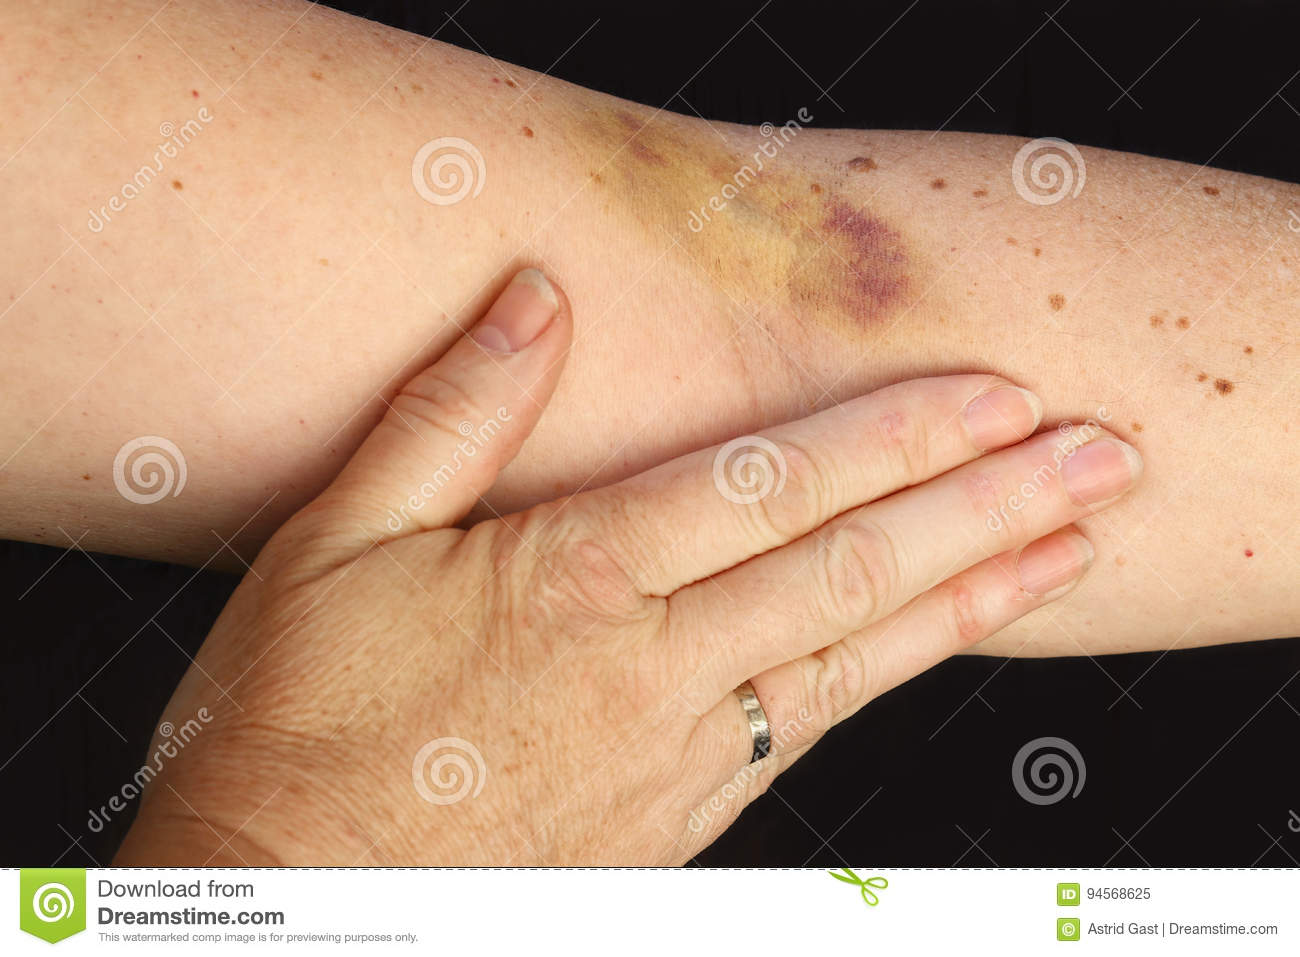 A Hematoma On A Woman`s Arm Stock Image - Image of aggressively